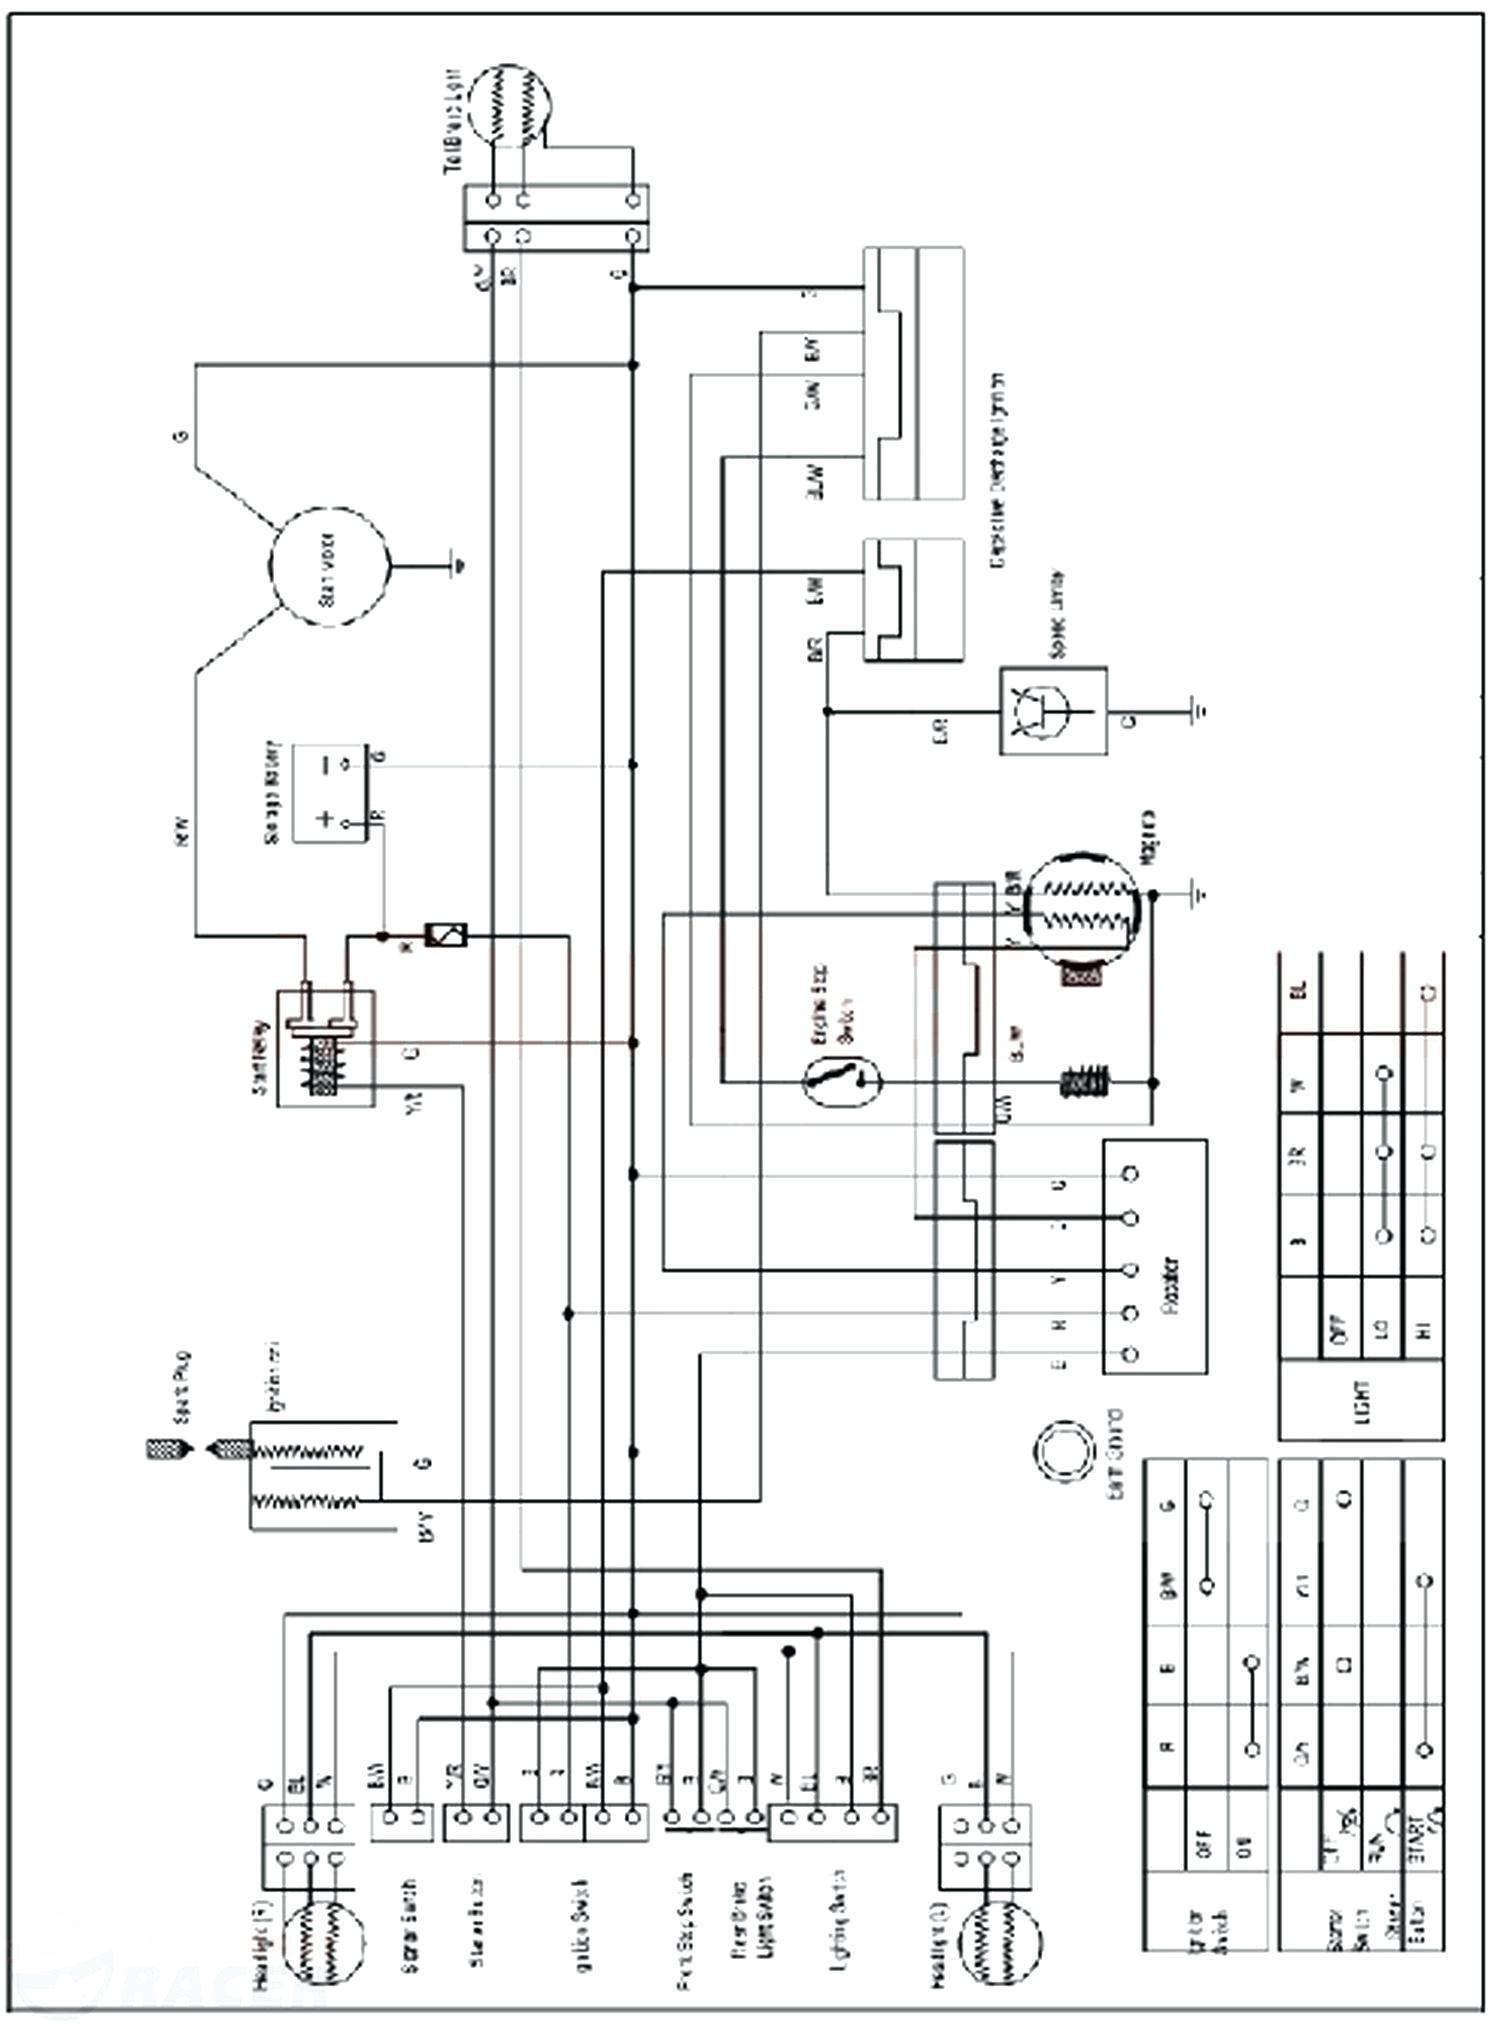 Taotao 110cc atv Wiring Diagram - Taotao 110cc atv Wiring Diagram Awesome Magnificent Tao 125 within for Alluring 110 2g